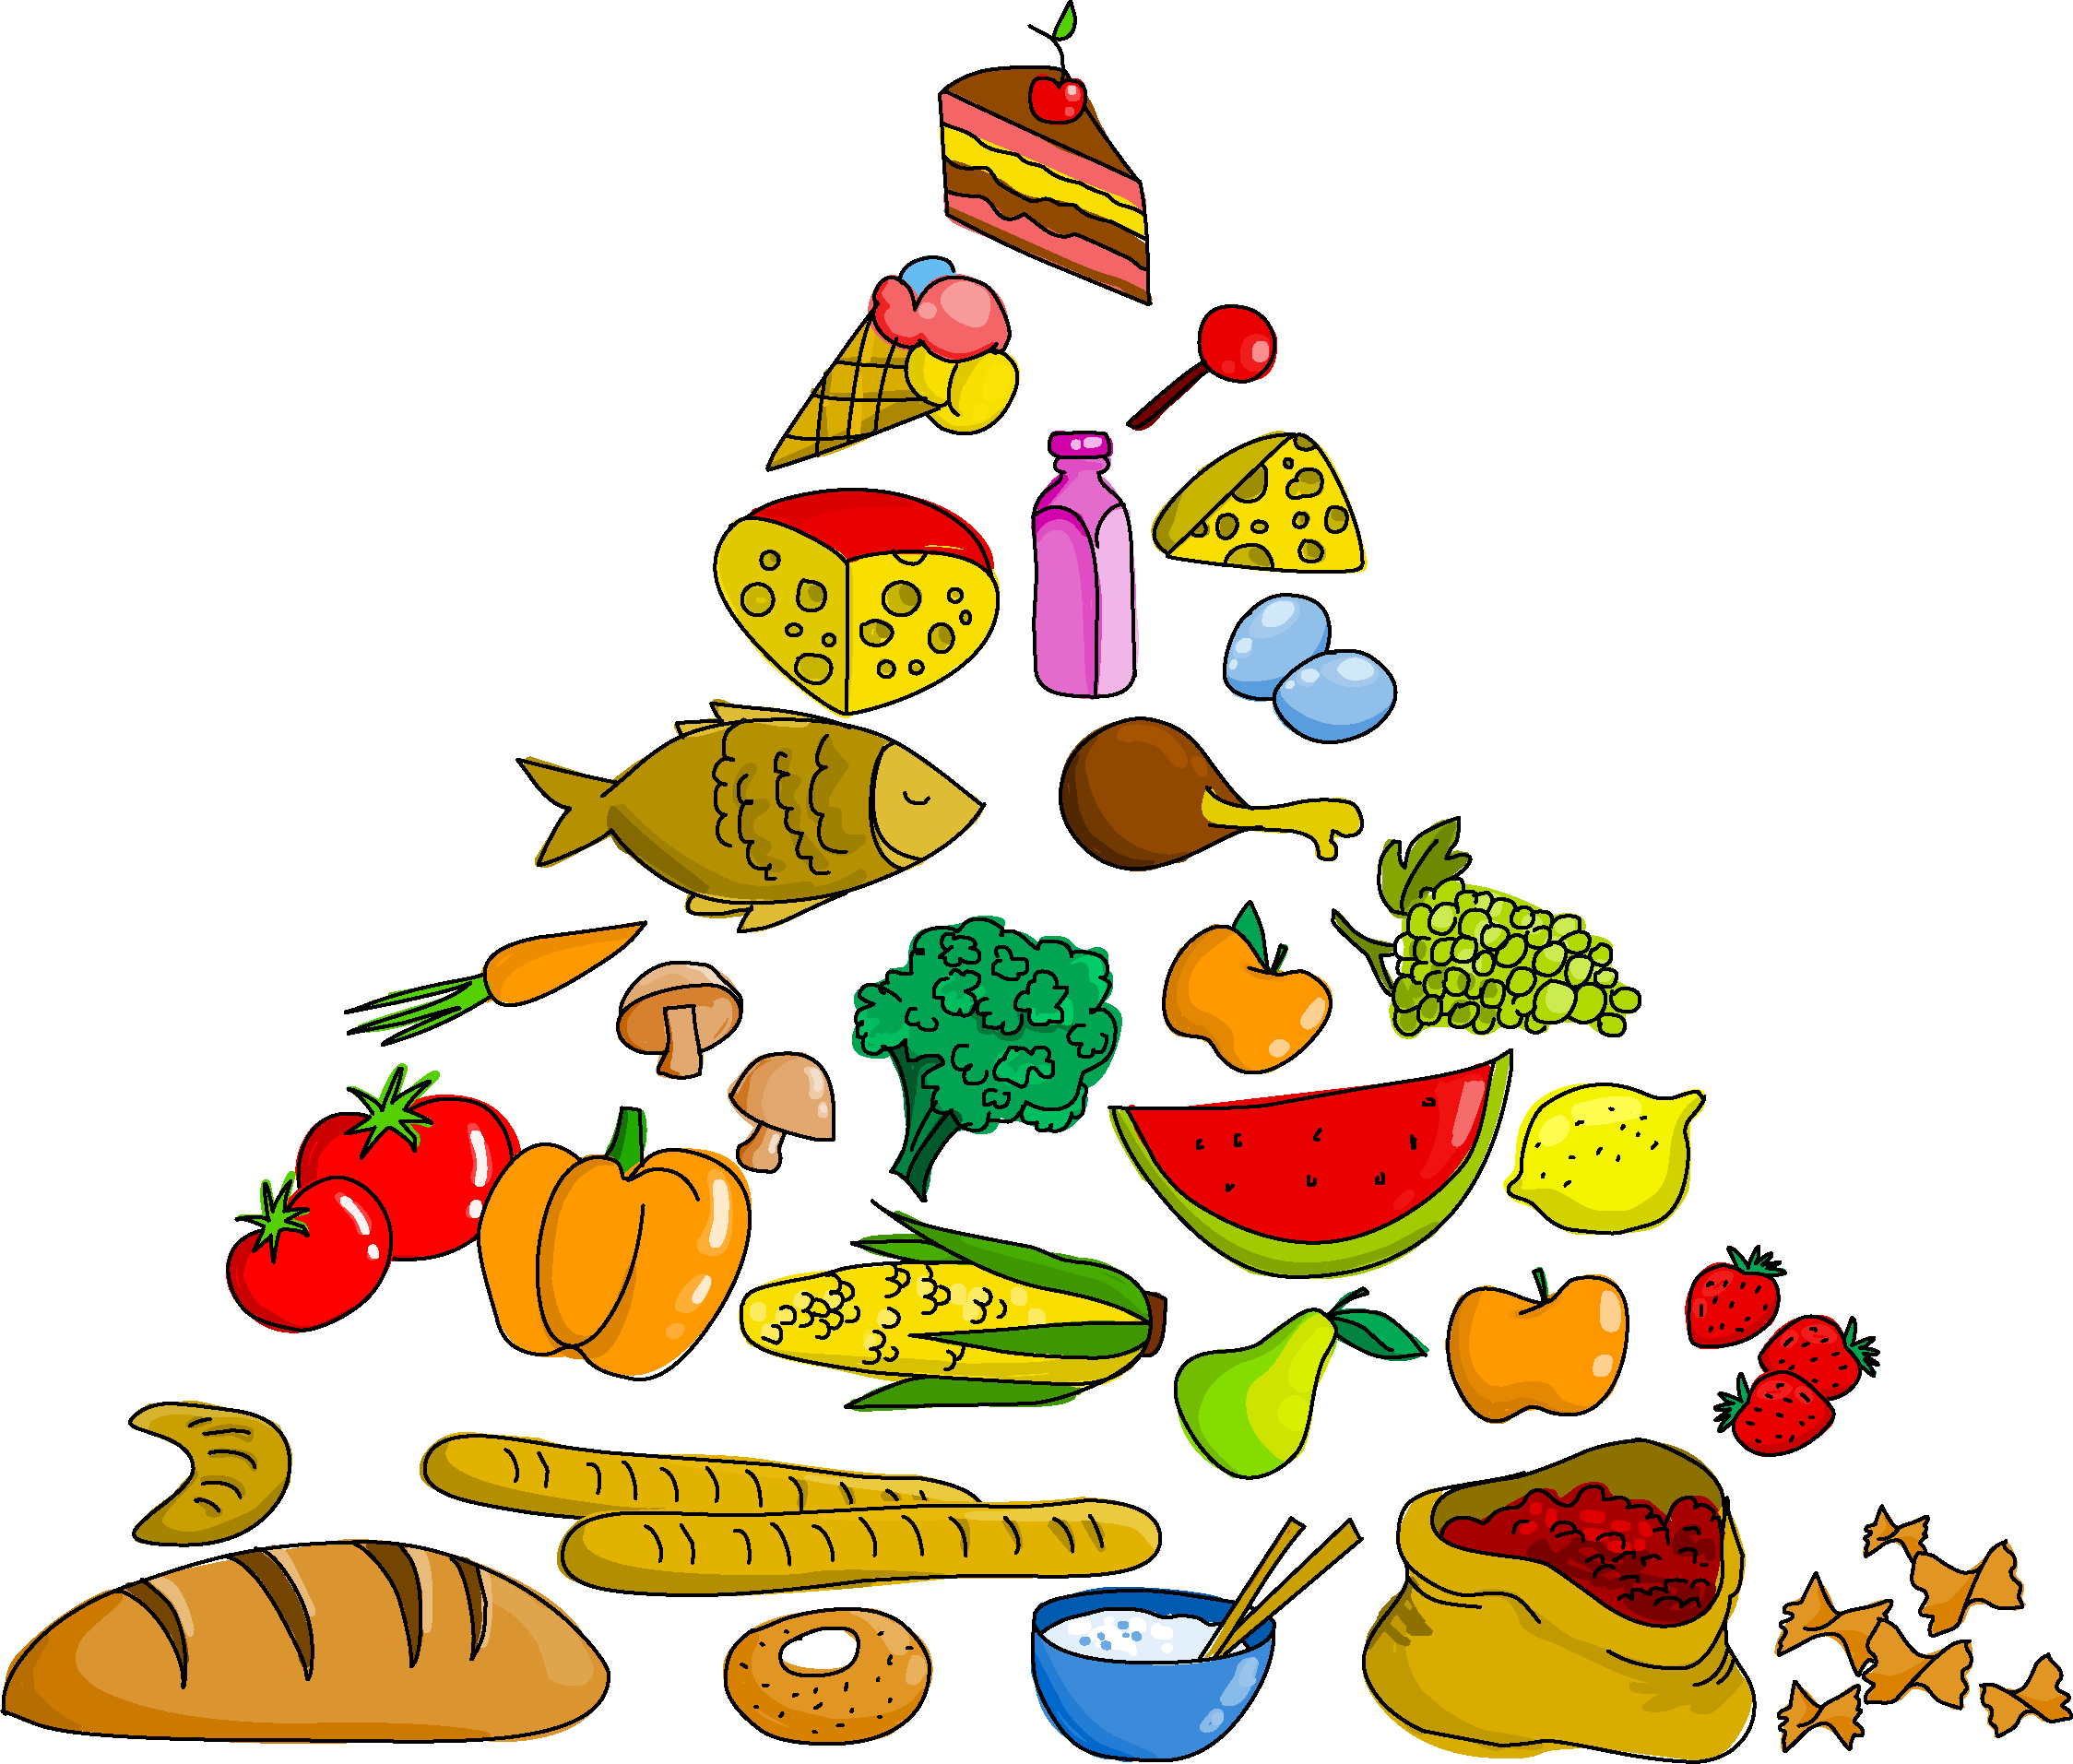 Food pyramid clip art. Foods clipart group